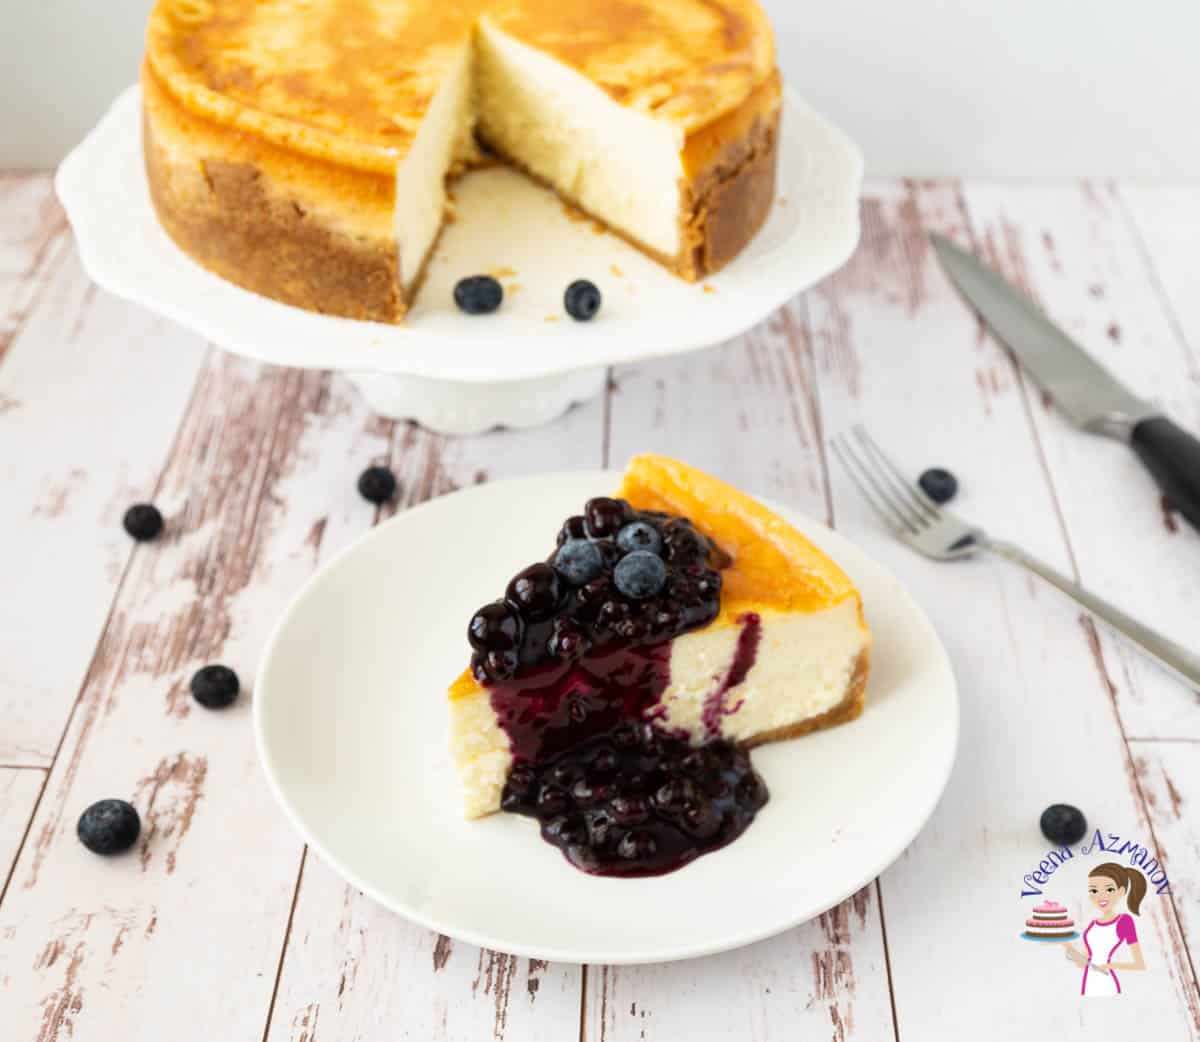 A slice of cheesecake with blueberry sauce.